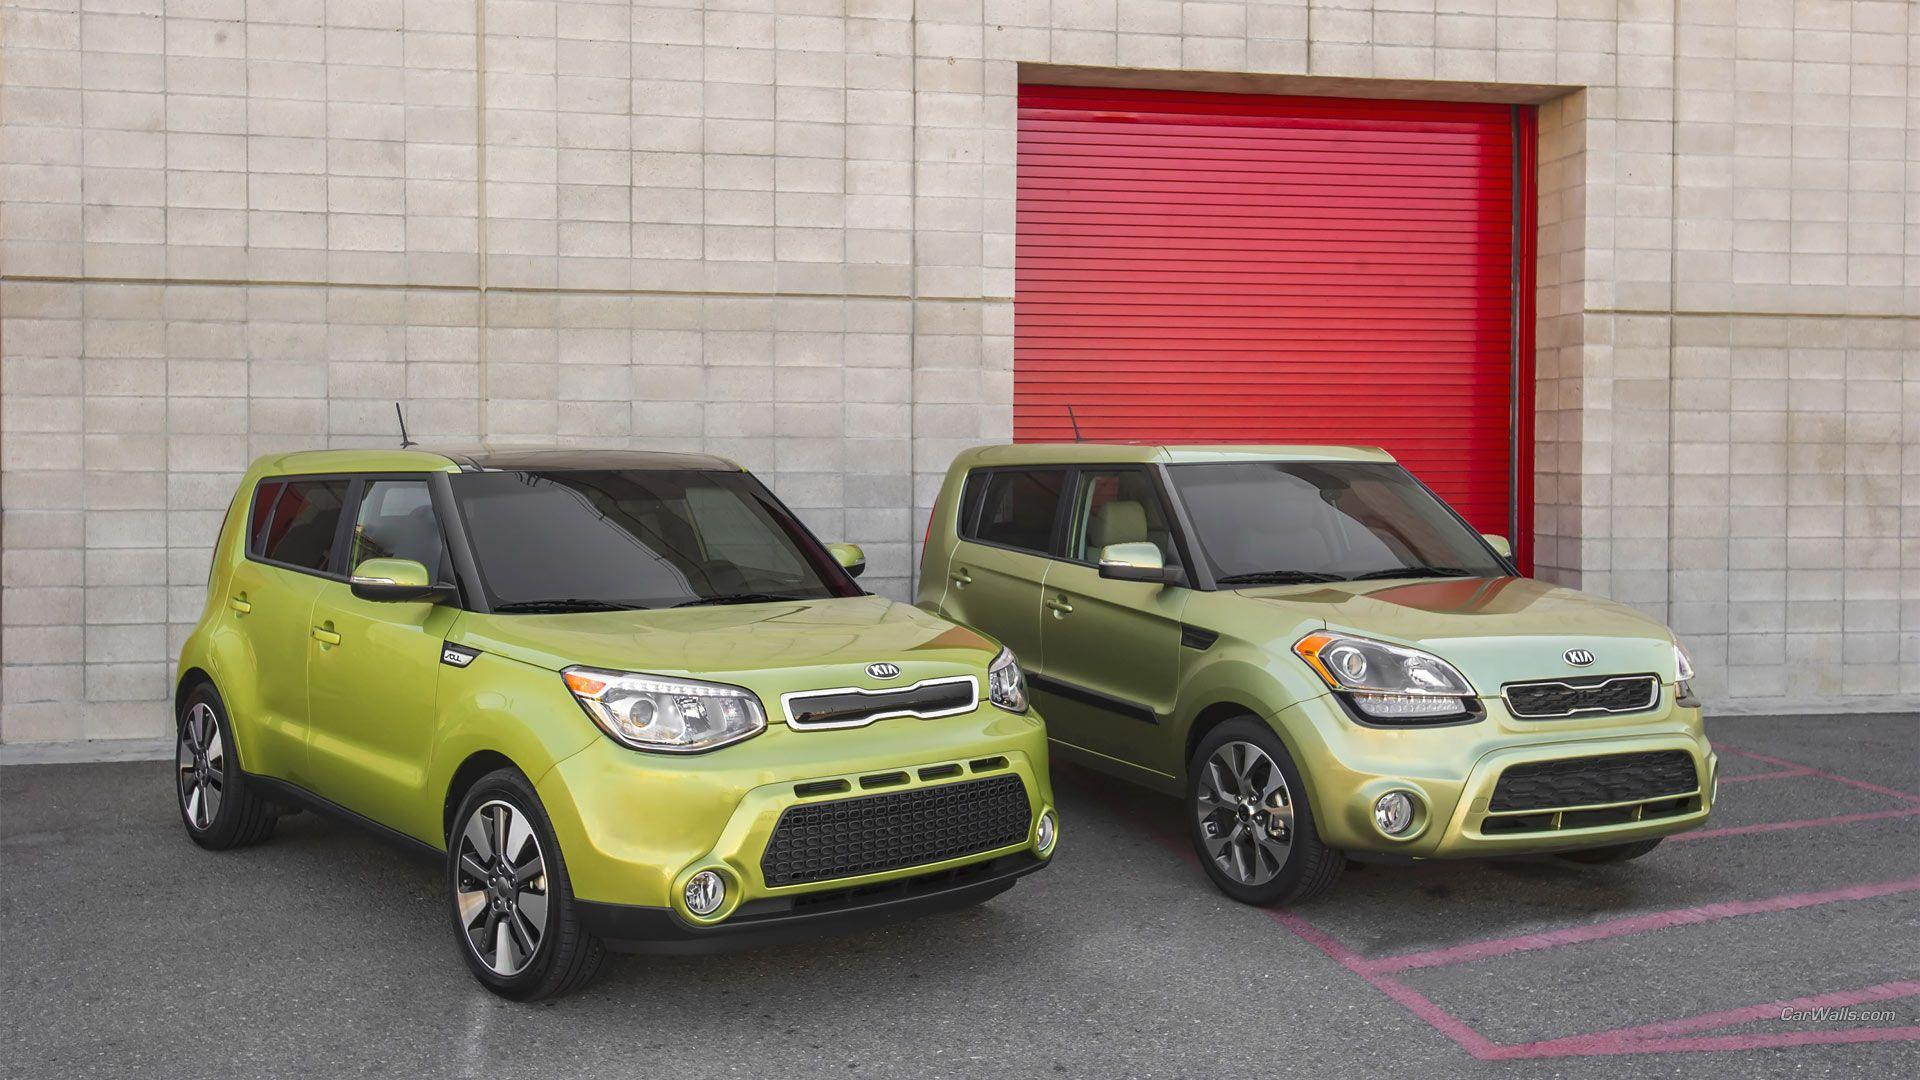 Kia Soul Full HD Wallpaper and Background Image | 1920x1080 | ID:449878